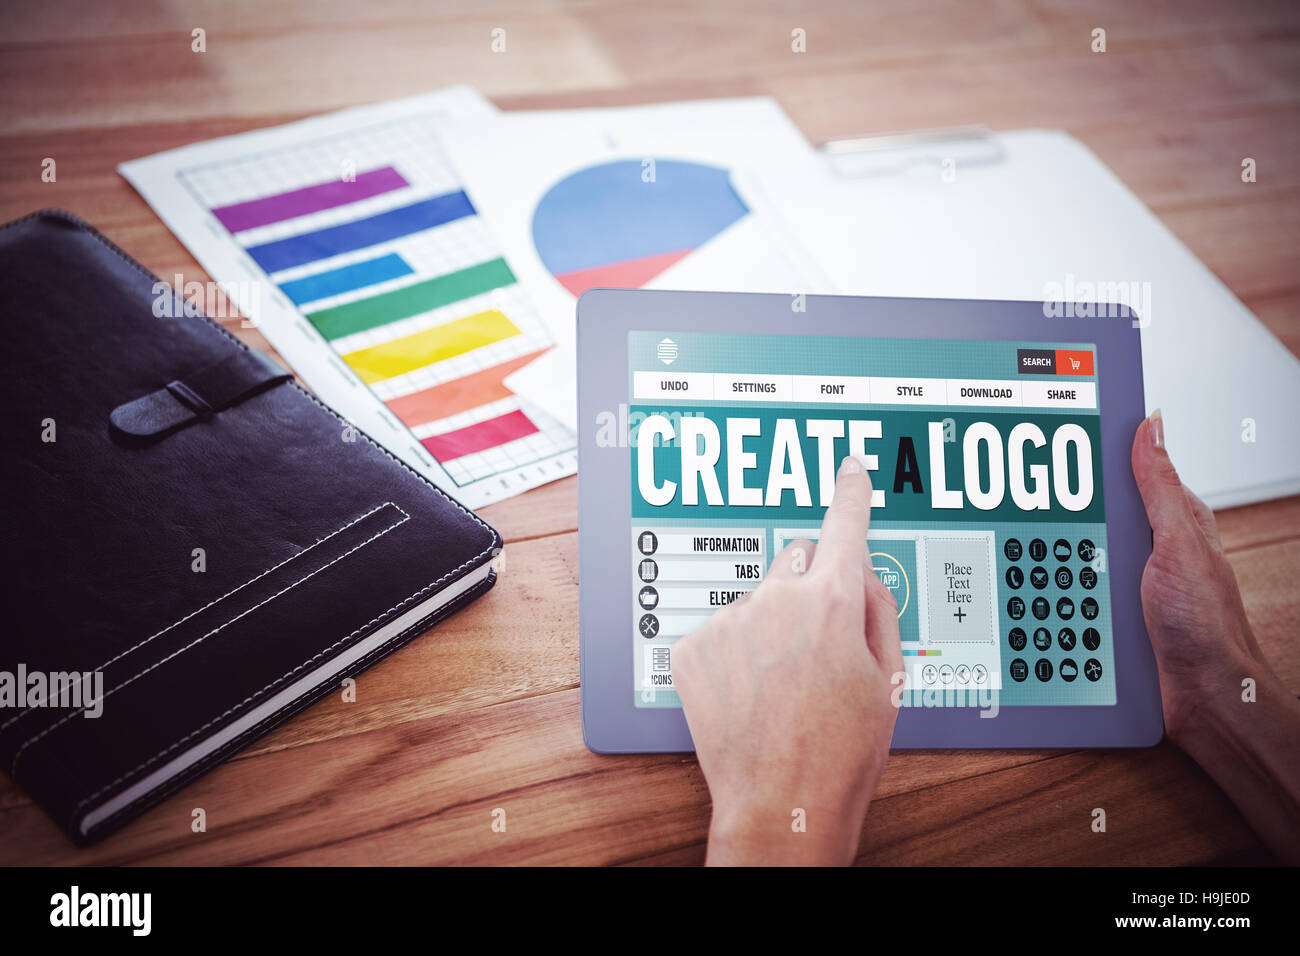 Composite image of webpage for create a logo - Stock Image